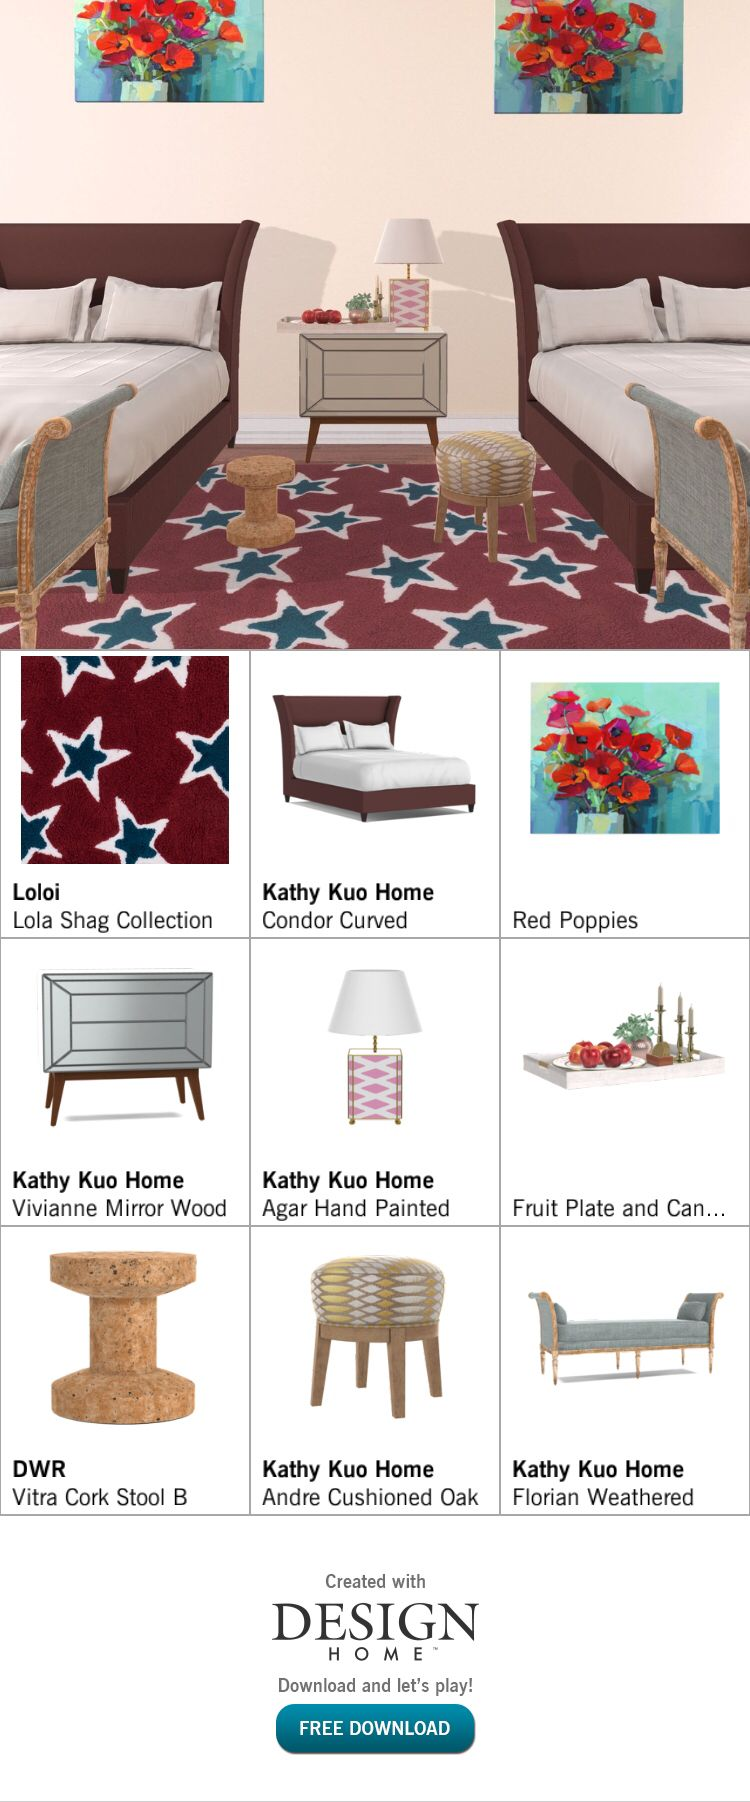 Home interior fruit plates created with design home  kitchen  pinterest